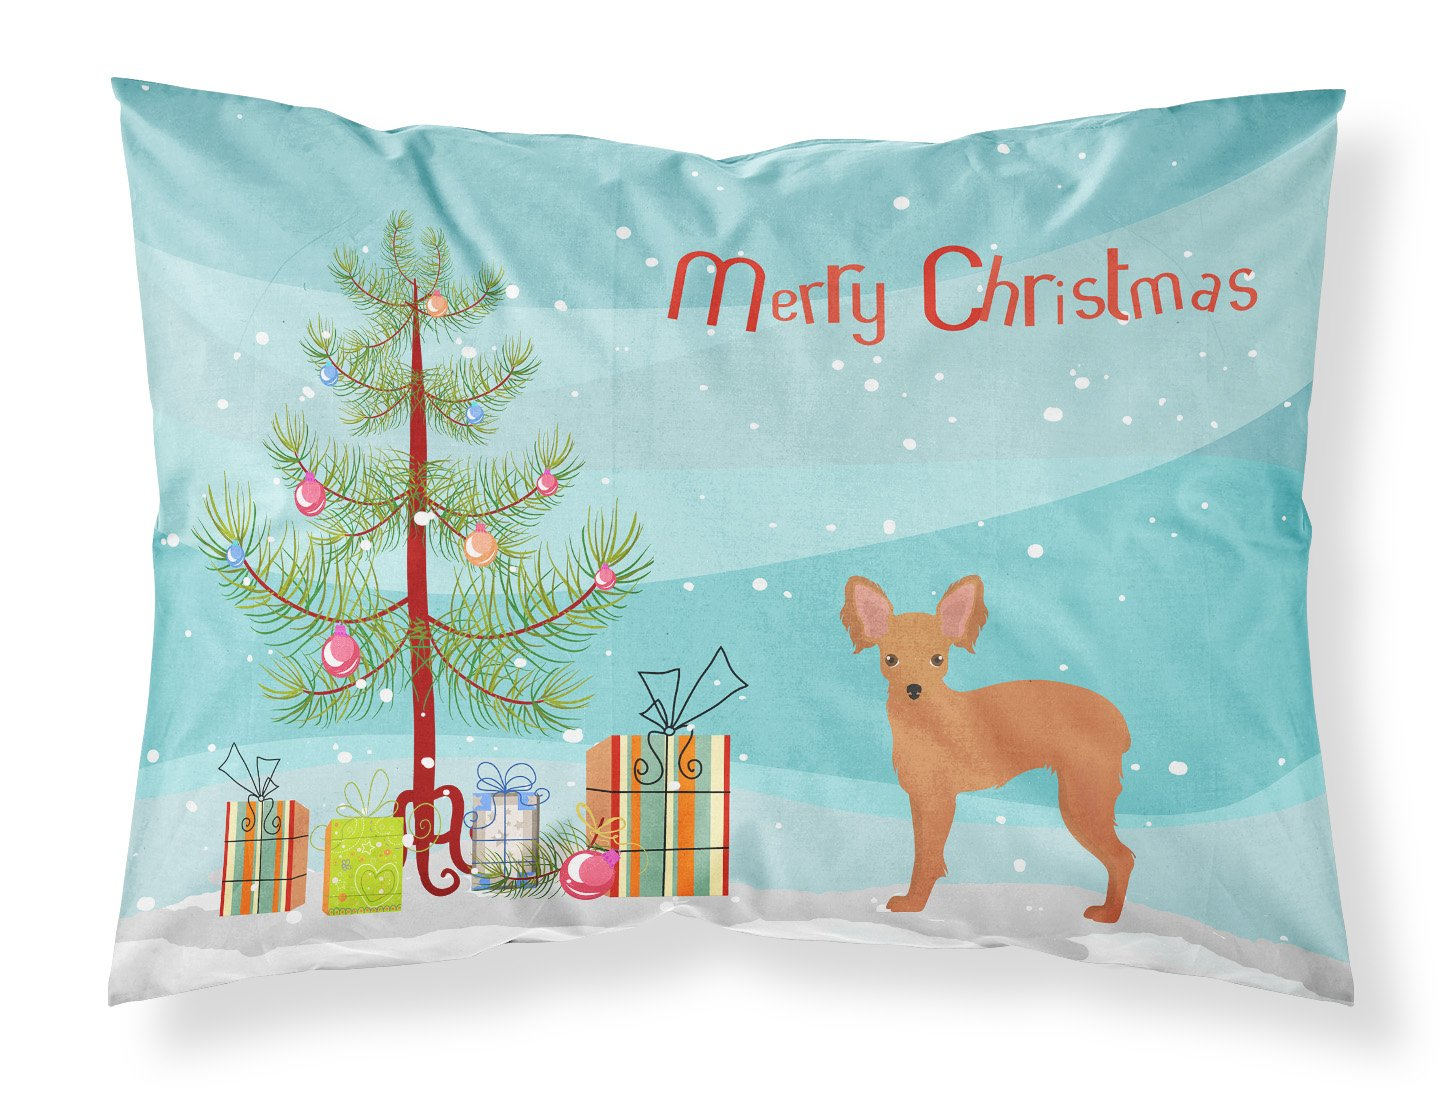 Russkiy Toy or Russian Toy Terrier Christmas Tree Fabric Standard Pillowcase CK3484PILLOWCASE by Caroline's Treasures